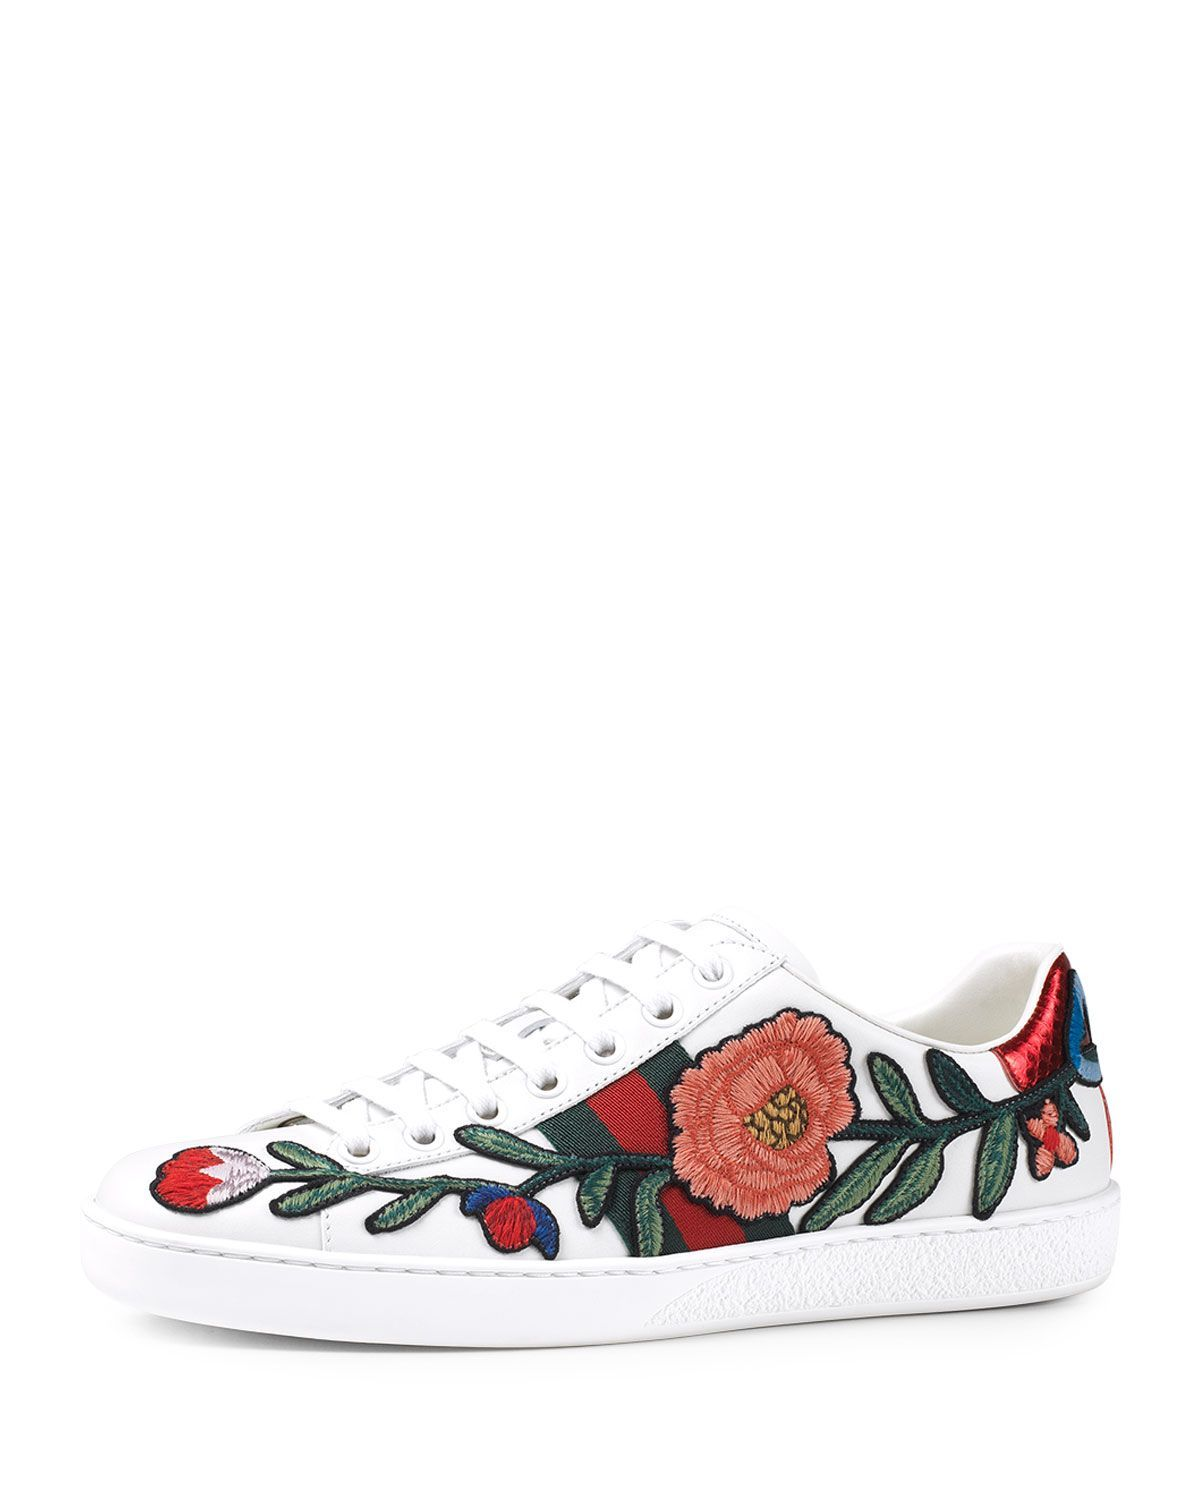 2636d477e Gucci New Ace Floral-Embroidered Low-Top Sneaker, White/Multi, Multi Colors